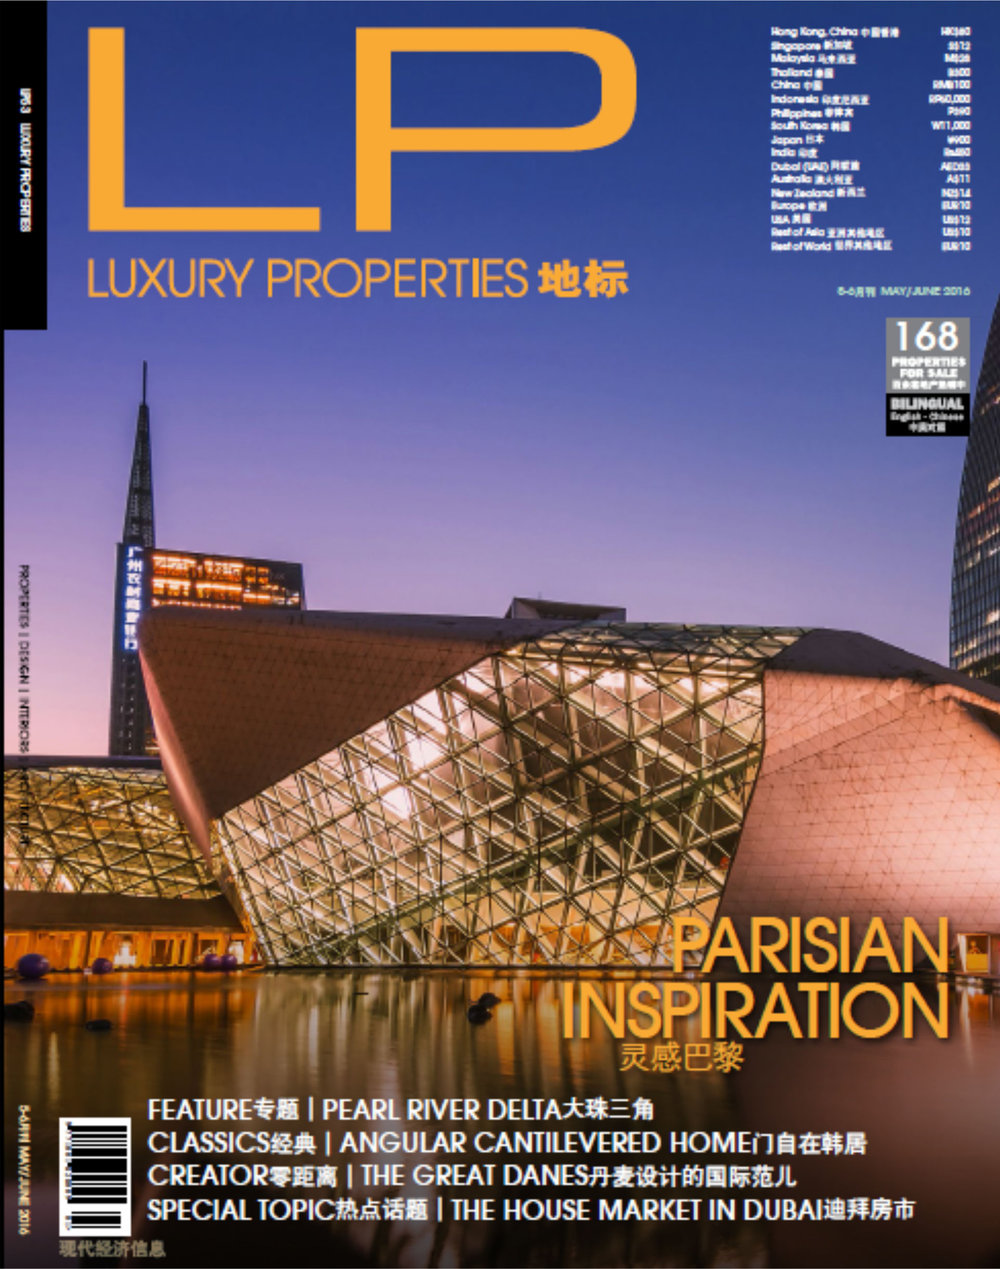 Luxury-properties 01.jpg